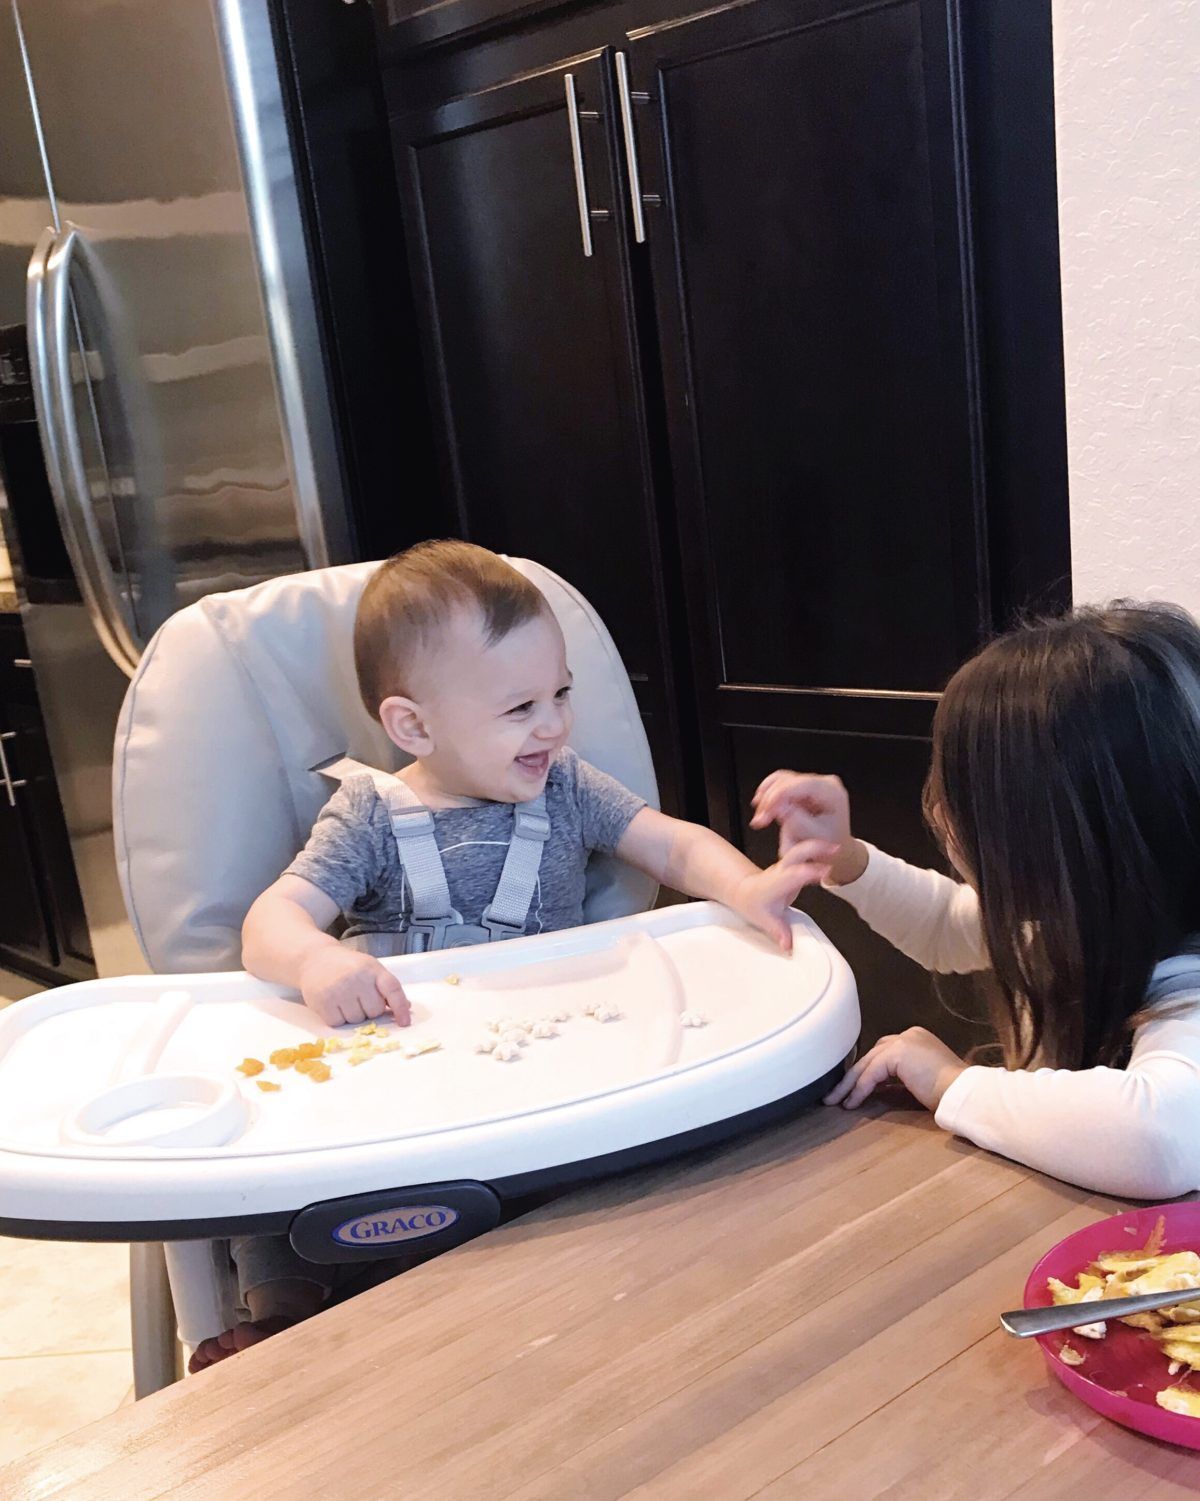 Introducing solids to infants, infant feeding, 9 month old feeding